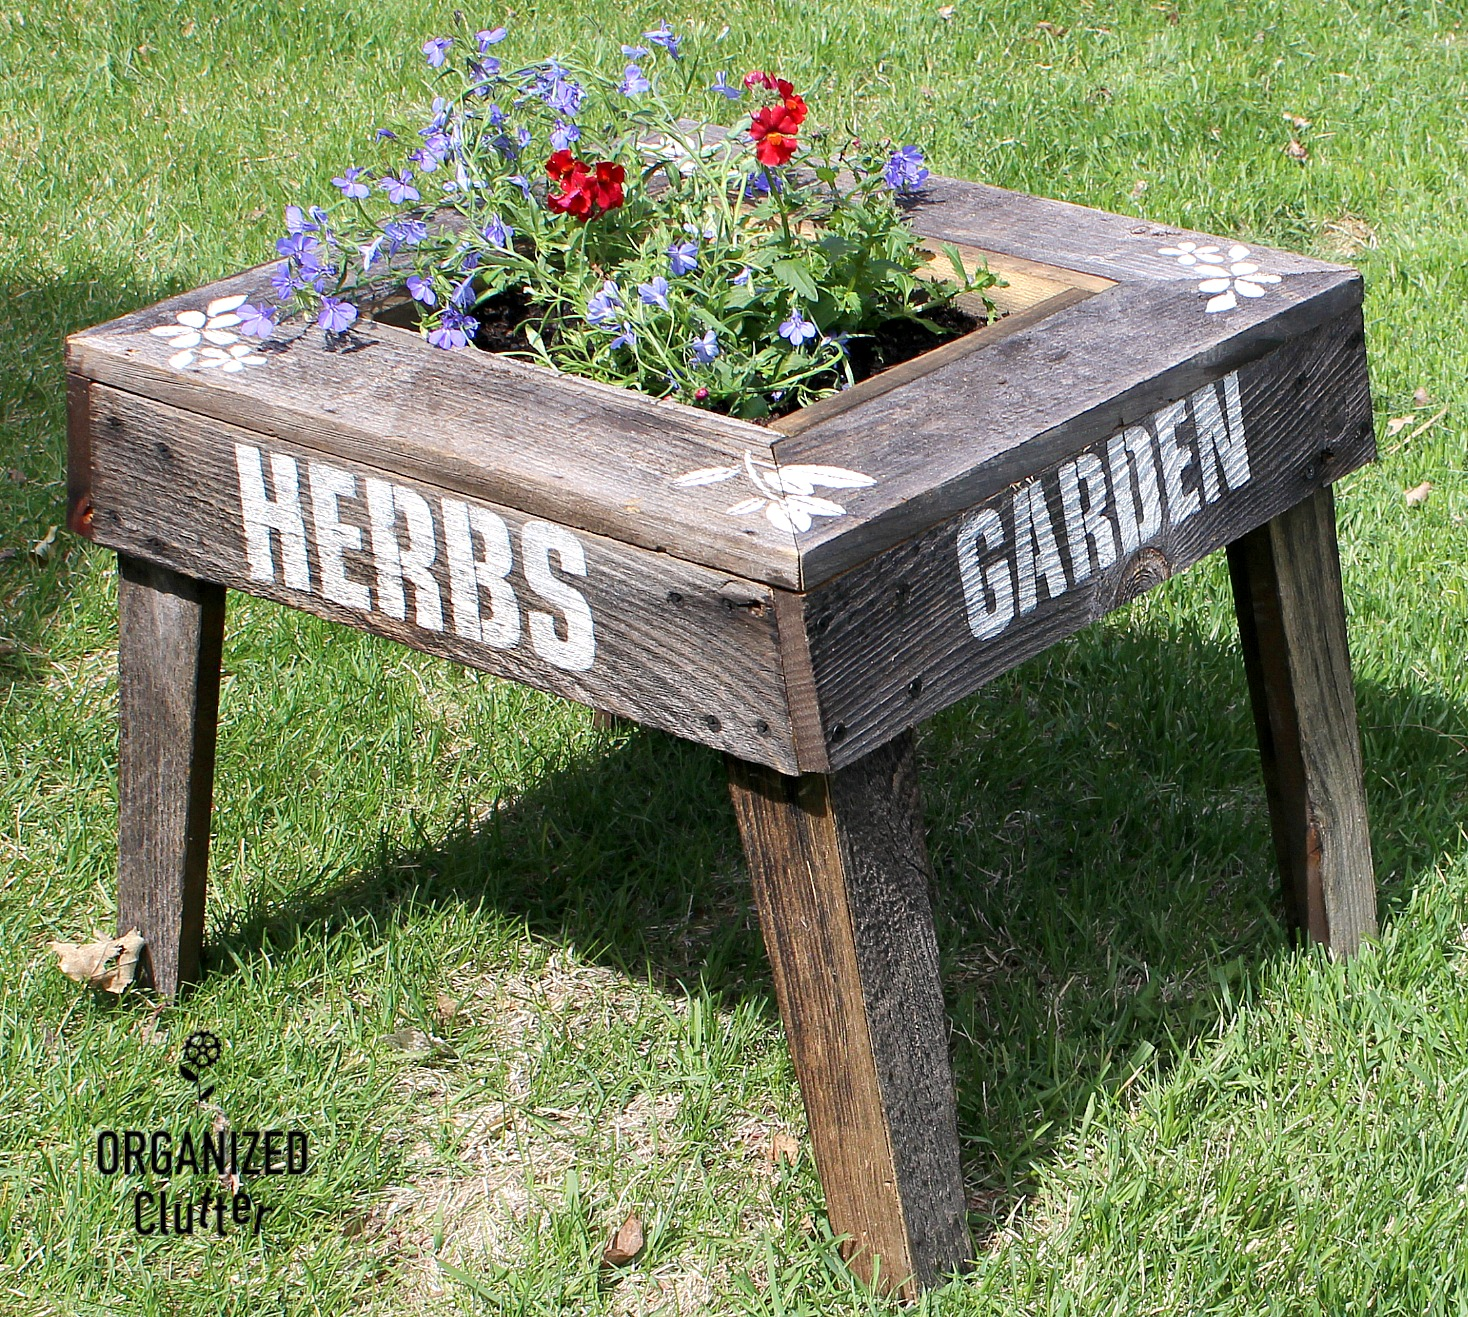 Rustic garden planter table by Organized Clutter, featured on Funky Junk Interiors